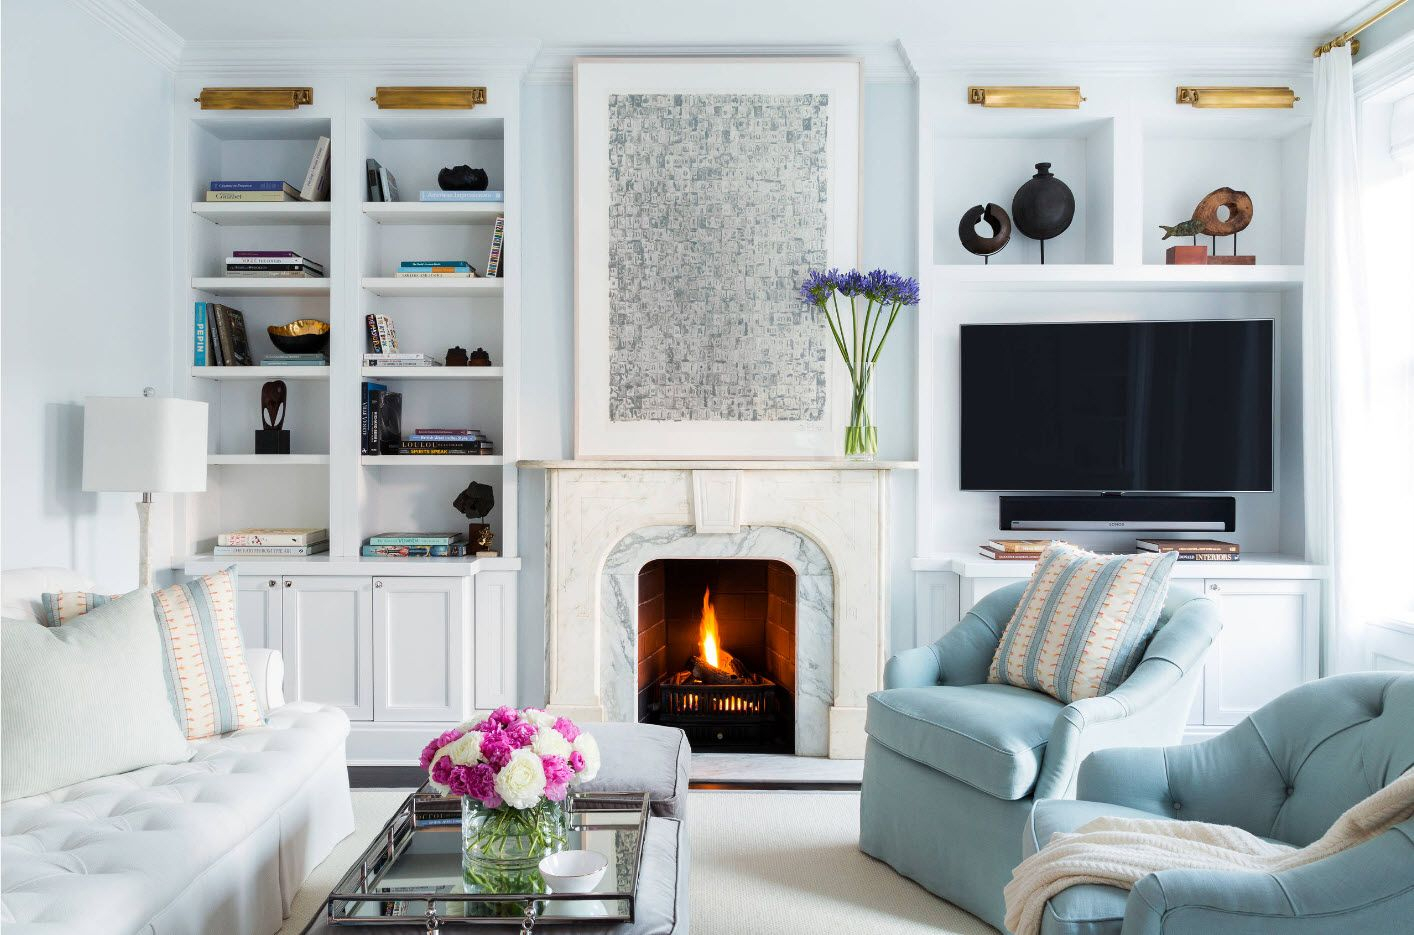 Light blue interior with fireplace